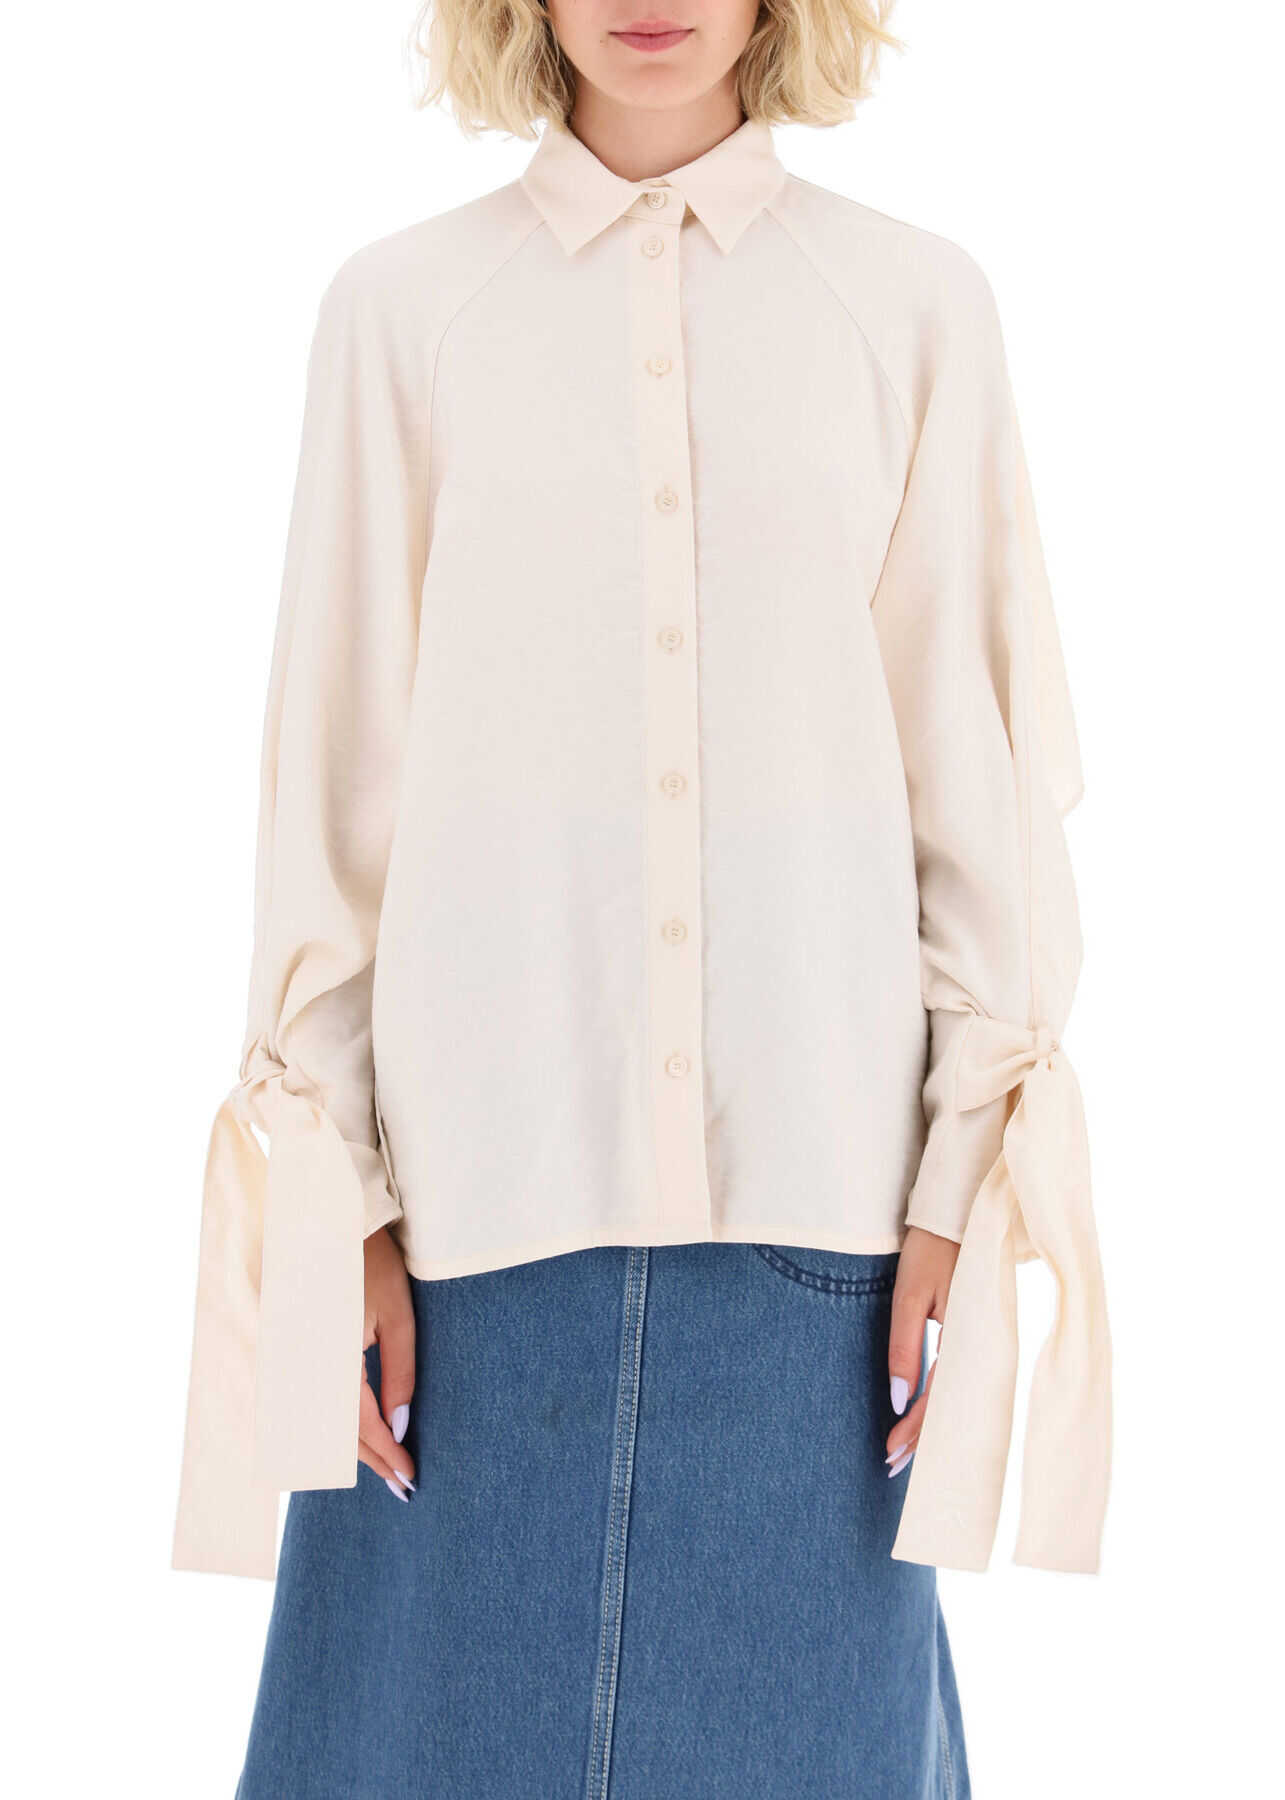 Kenzo Shirt With Knotted Cuffs FA62CH0295AS ECRU image0